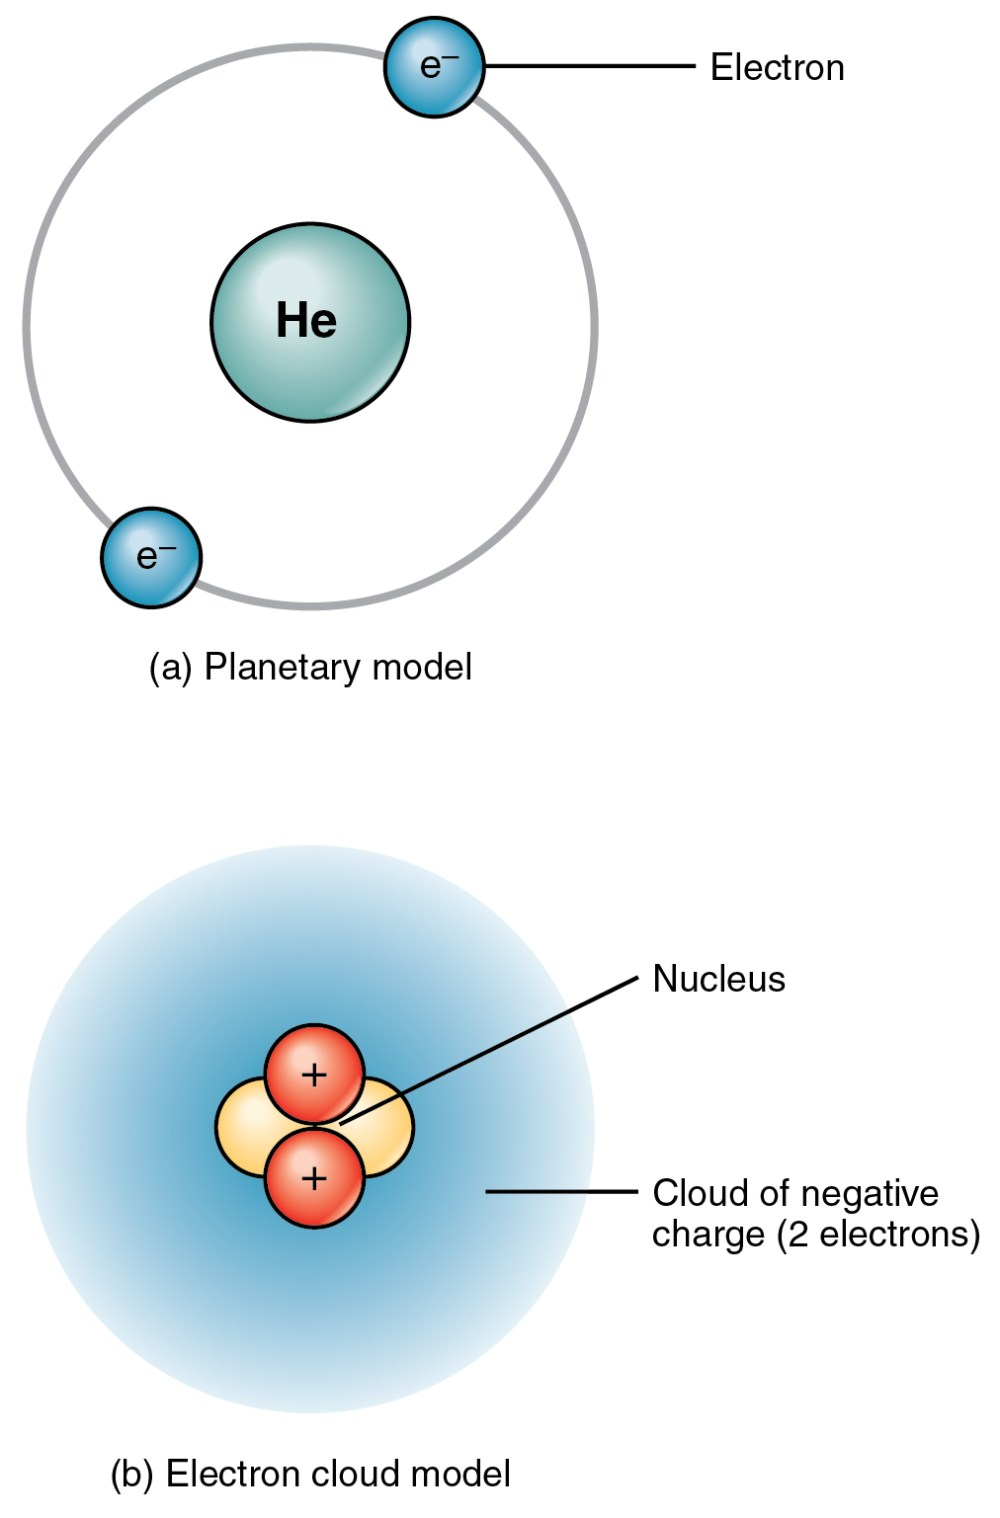 medium resolution of the top panel of this figure shows two electrons orbiting around the nucleus of a helium